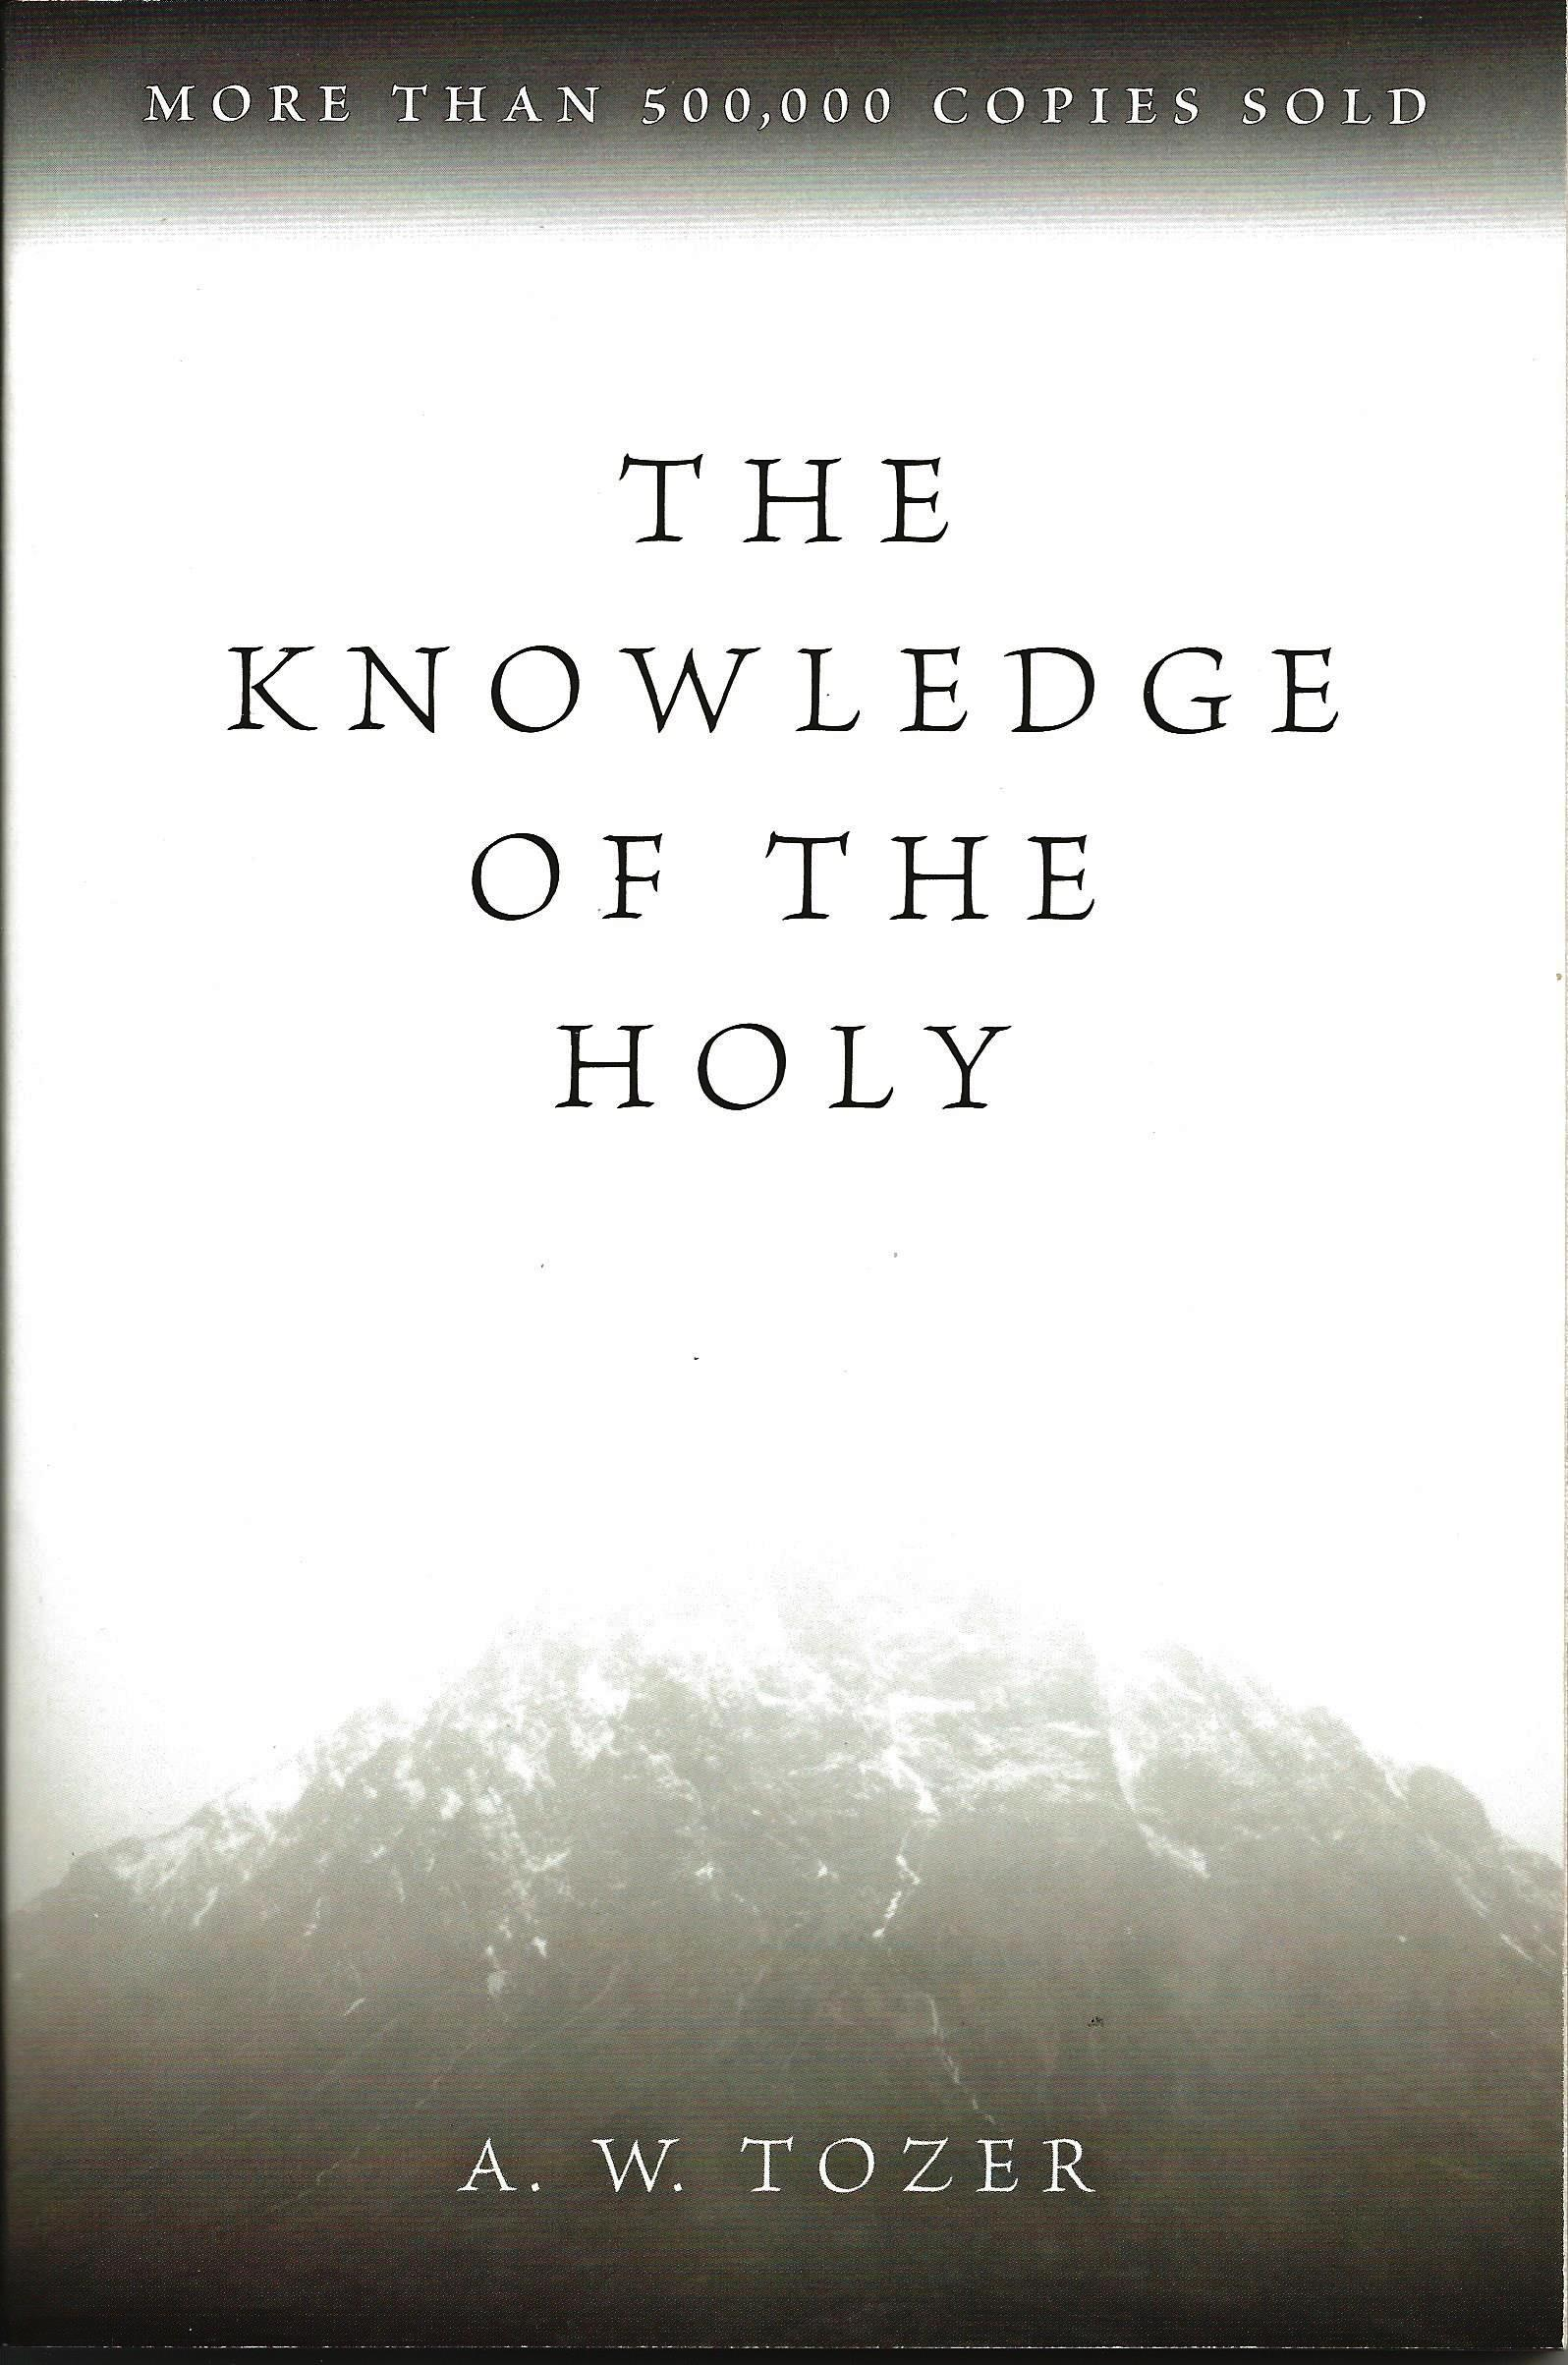 THE KNOWLEDGE OF THE HOLY A. W. Tozer